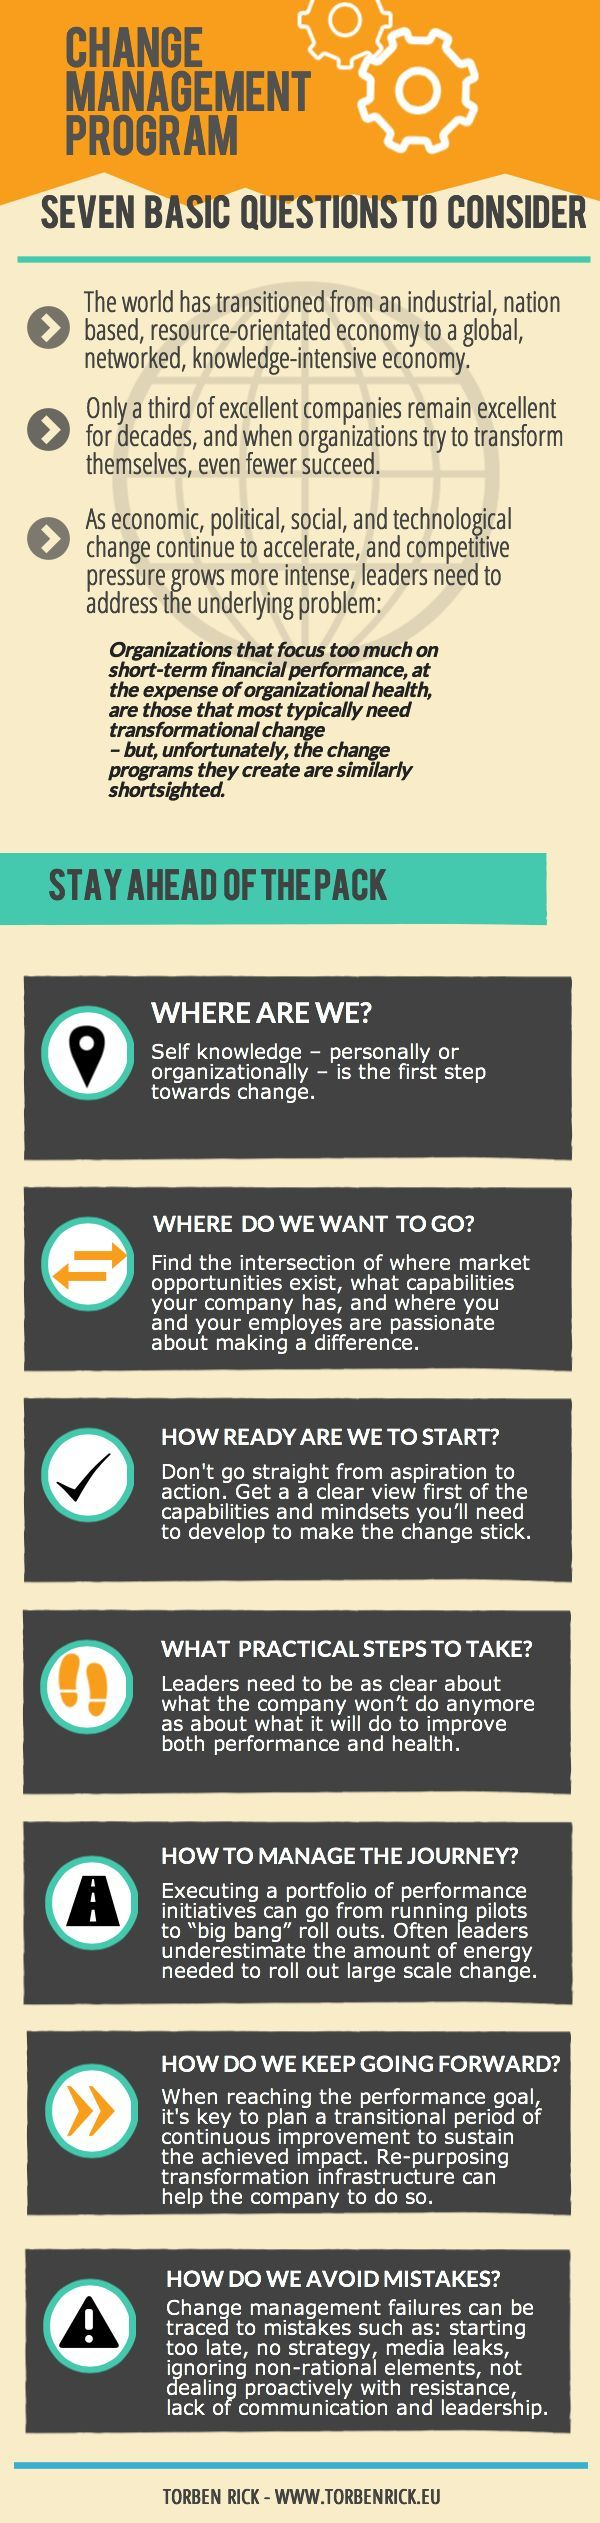 192 best change management images on pinterest career advice seven basic change questions to consider infographic changecom changemanagement 1betcityfo Gallery